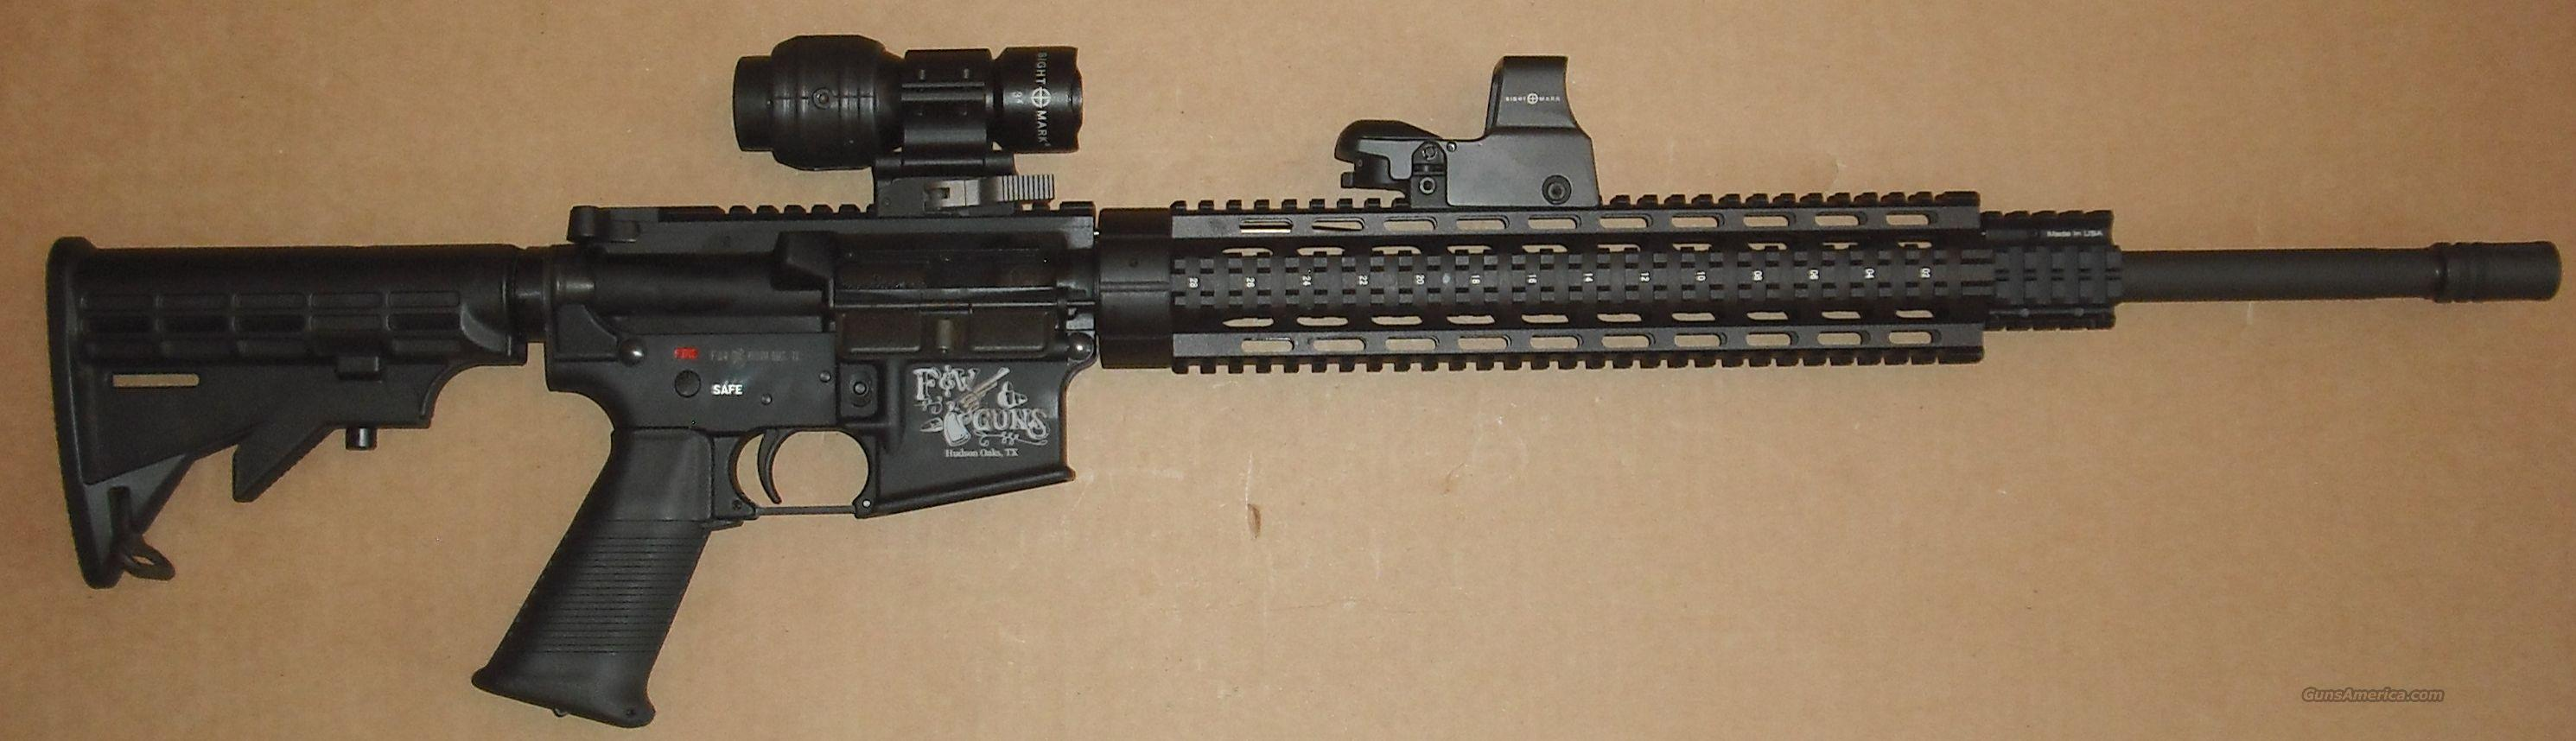 AR-15 Custom Built with scope and extras  Guns > Rifles > AR-15 Rifles - Small Manufacturers > Complete Rifle